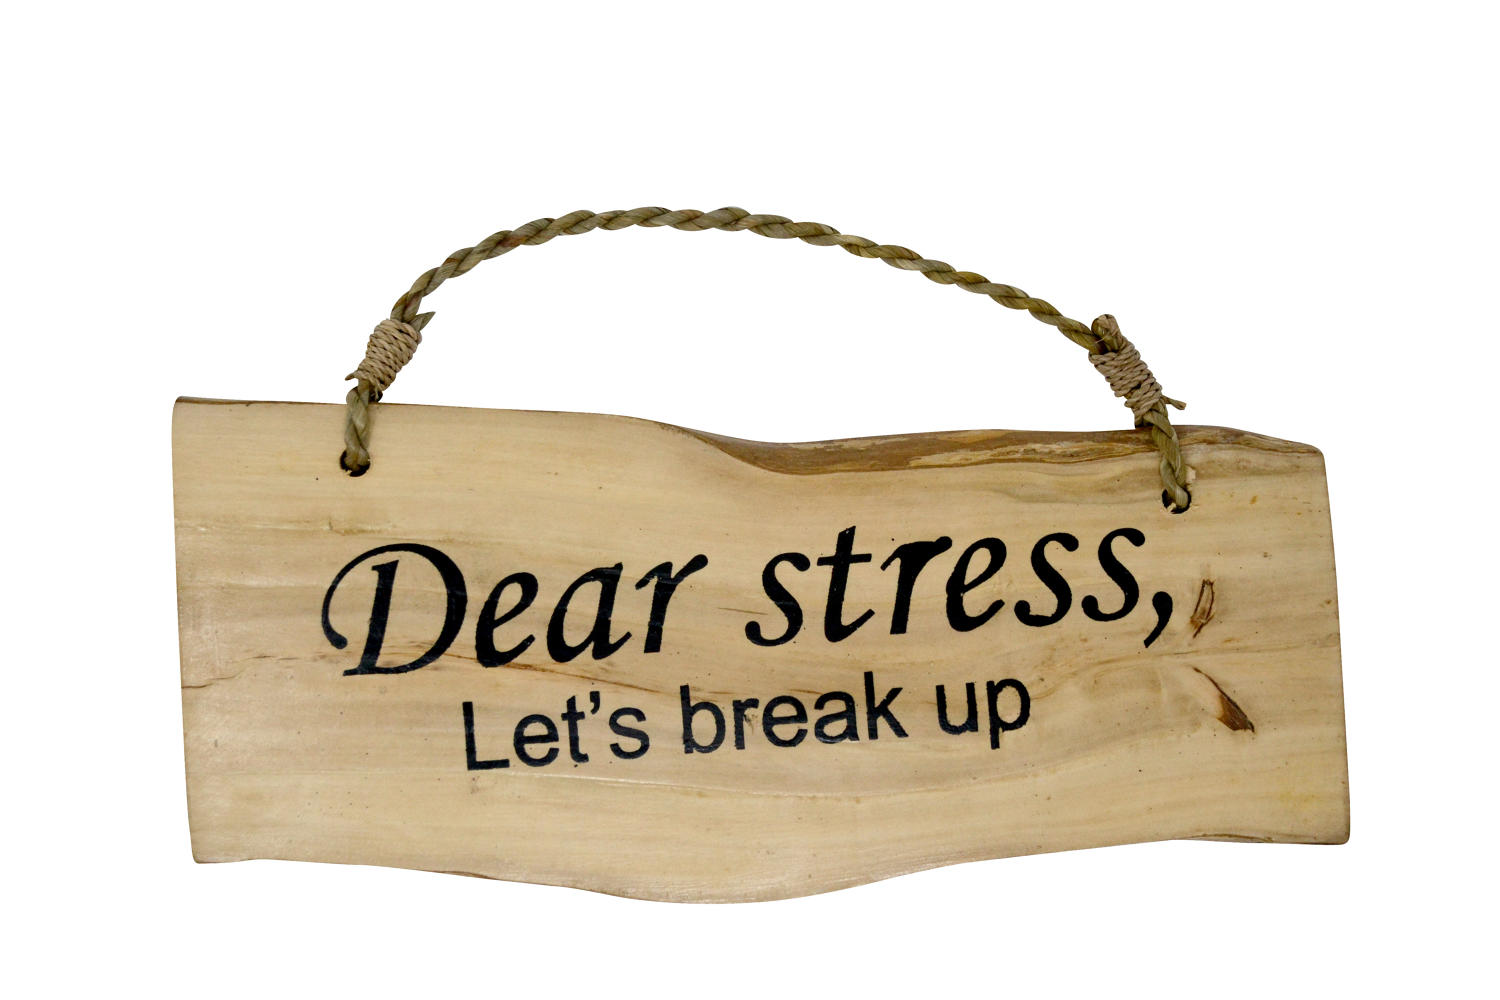 'Dear stess, let's break up' Coffee Wood Plaque